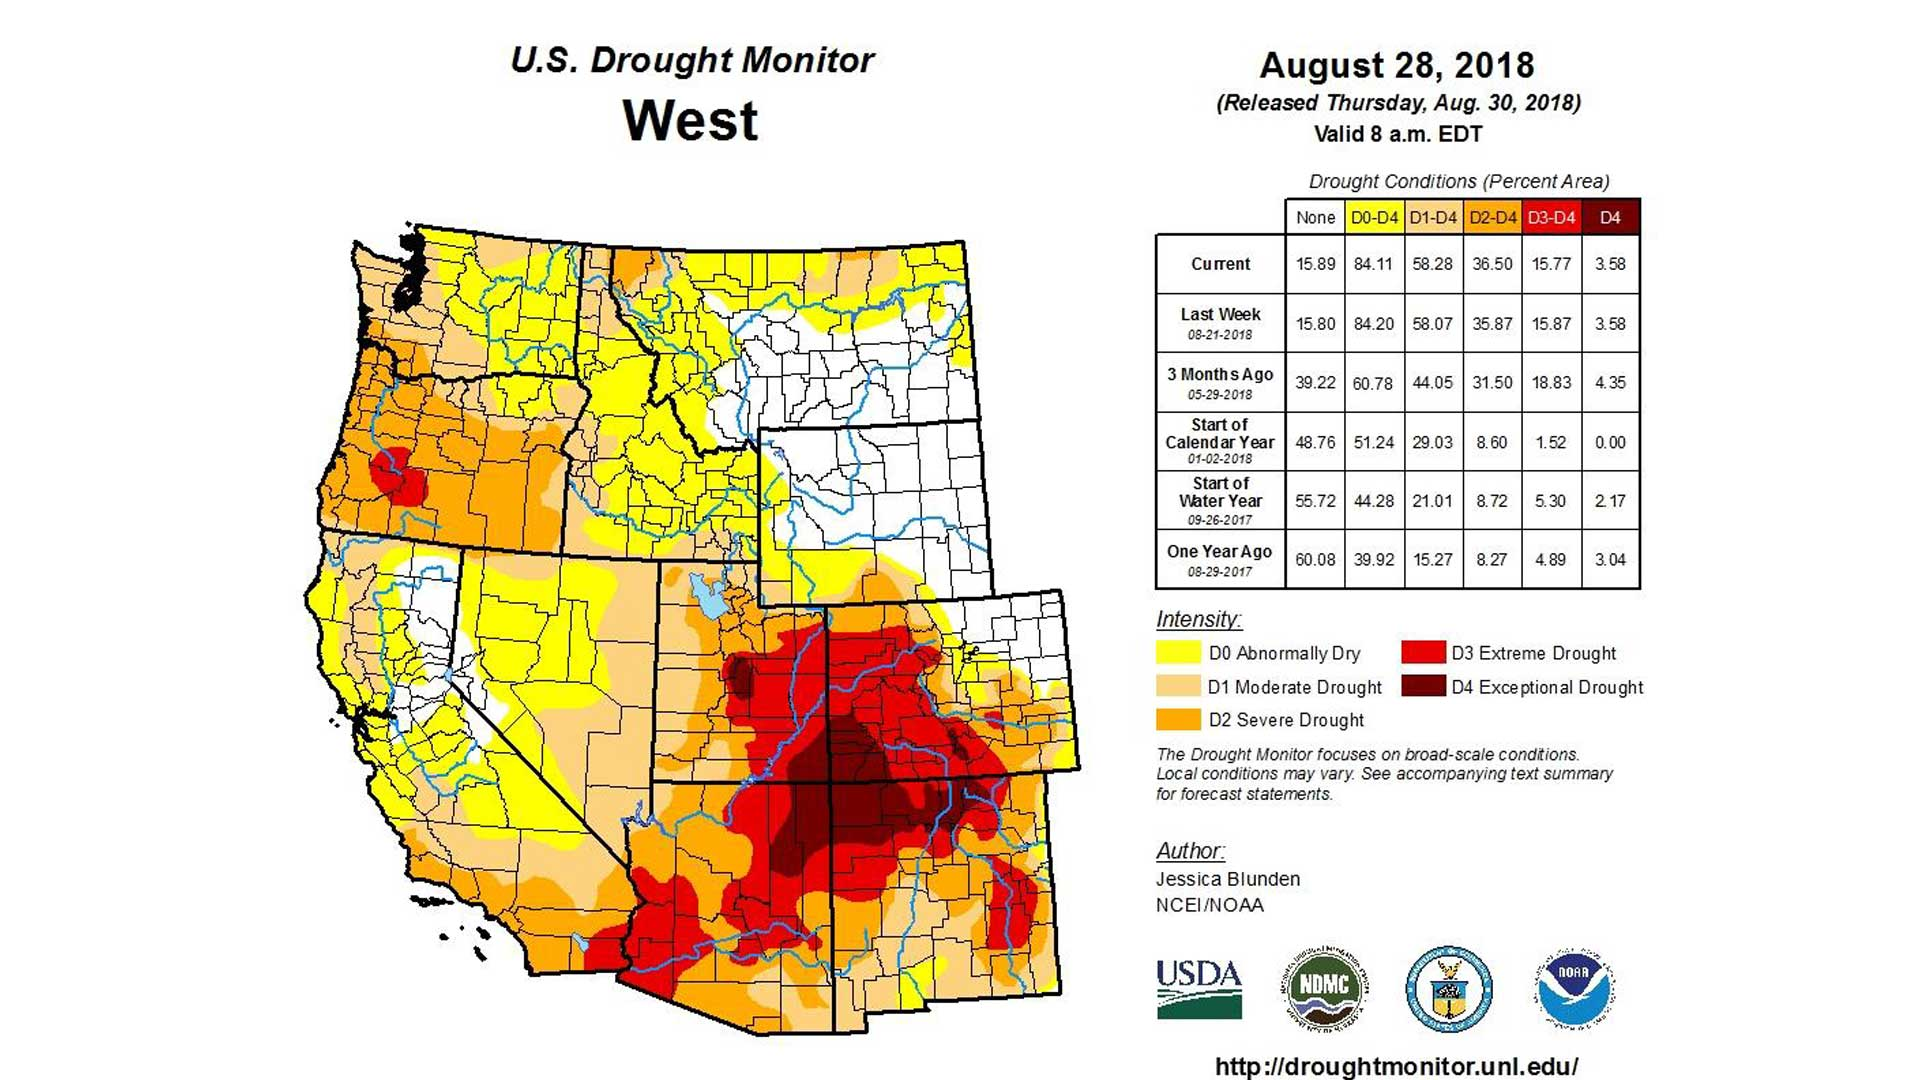 A drought map of the West dated Aug. 28, 2018.